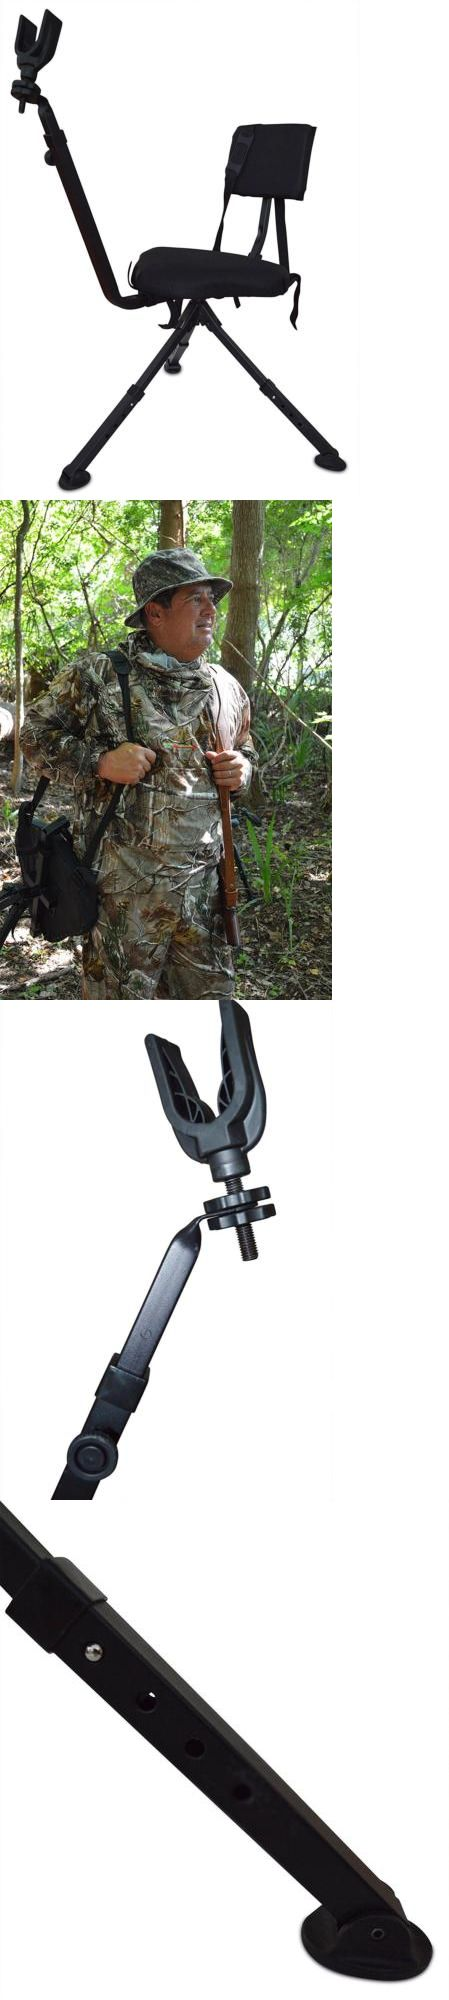 Bow hunting chair - Seats And Chairs 52507 Benchmaster Ground Hunting And Shooting Chair Bmgbhsc Blind With Rifle